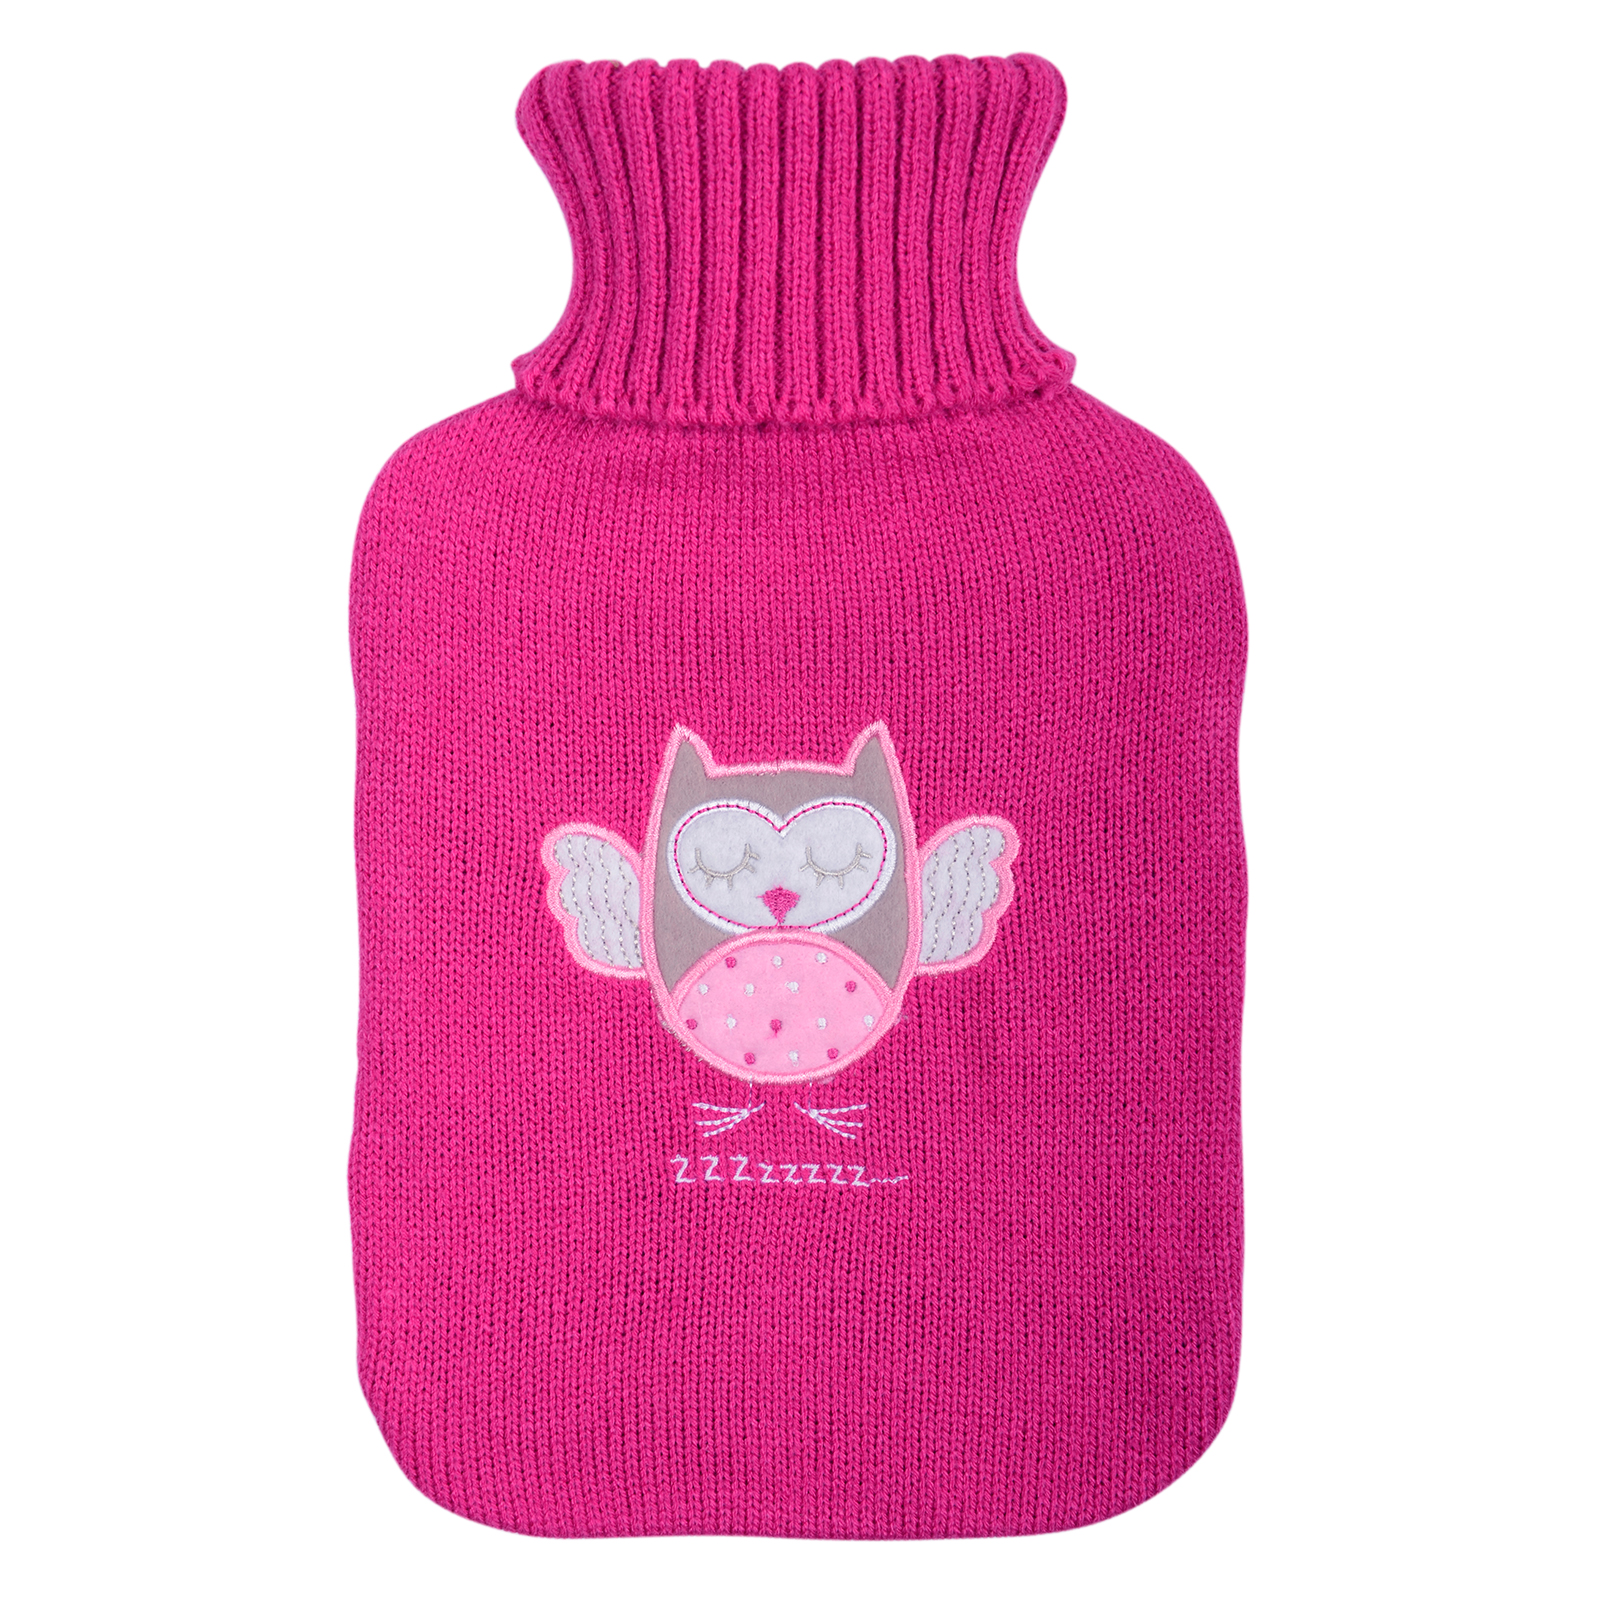 Large hot water bottle quality hot water bottles with beautiful large hot water bottle quality hot water bottles bankloansurffo Choice Image